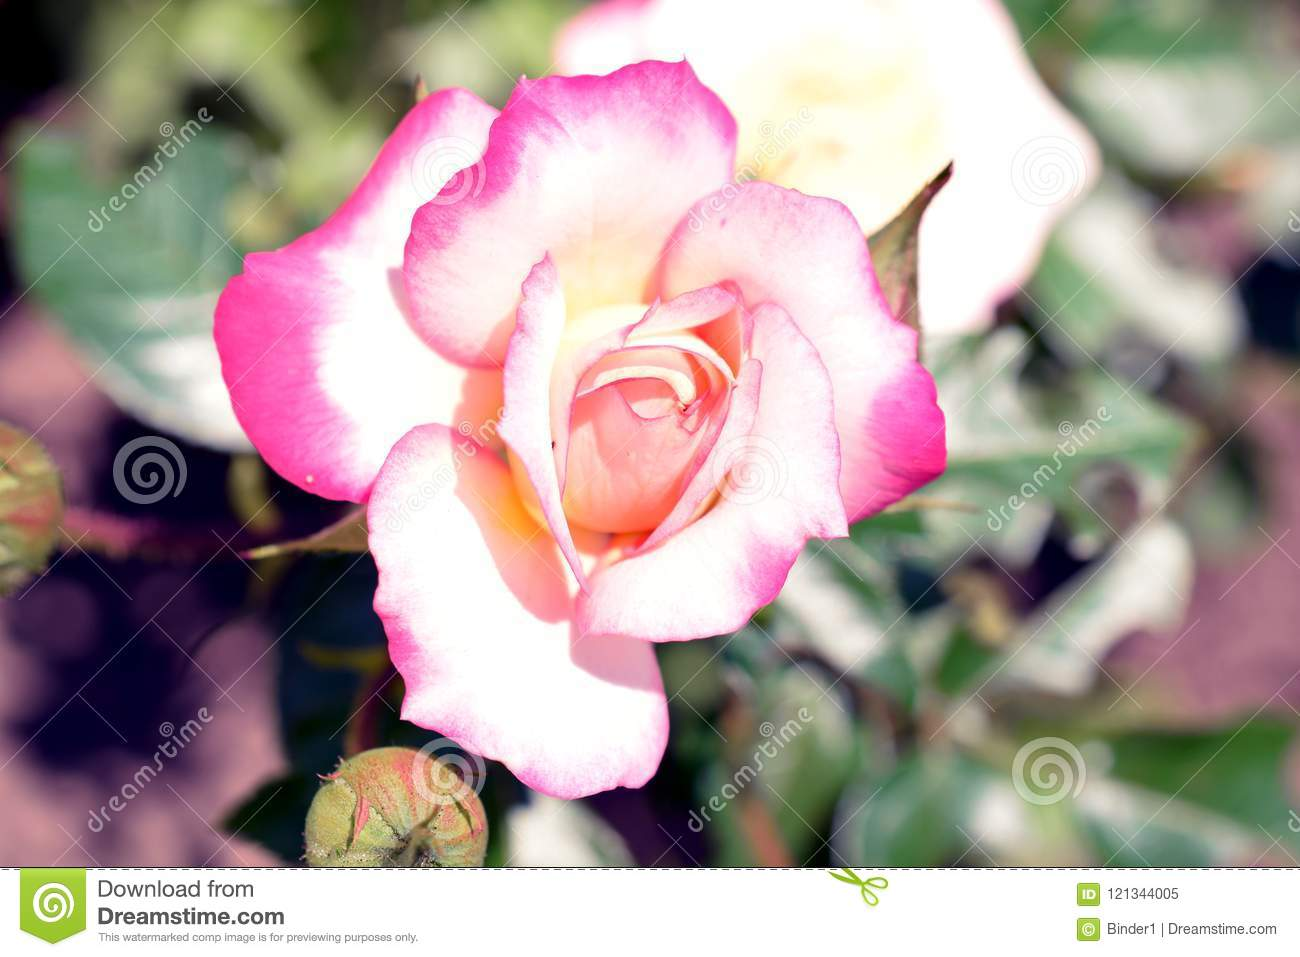 Very Pretty Rose Close Up In My Garden Stock Image Image Of Color